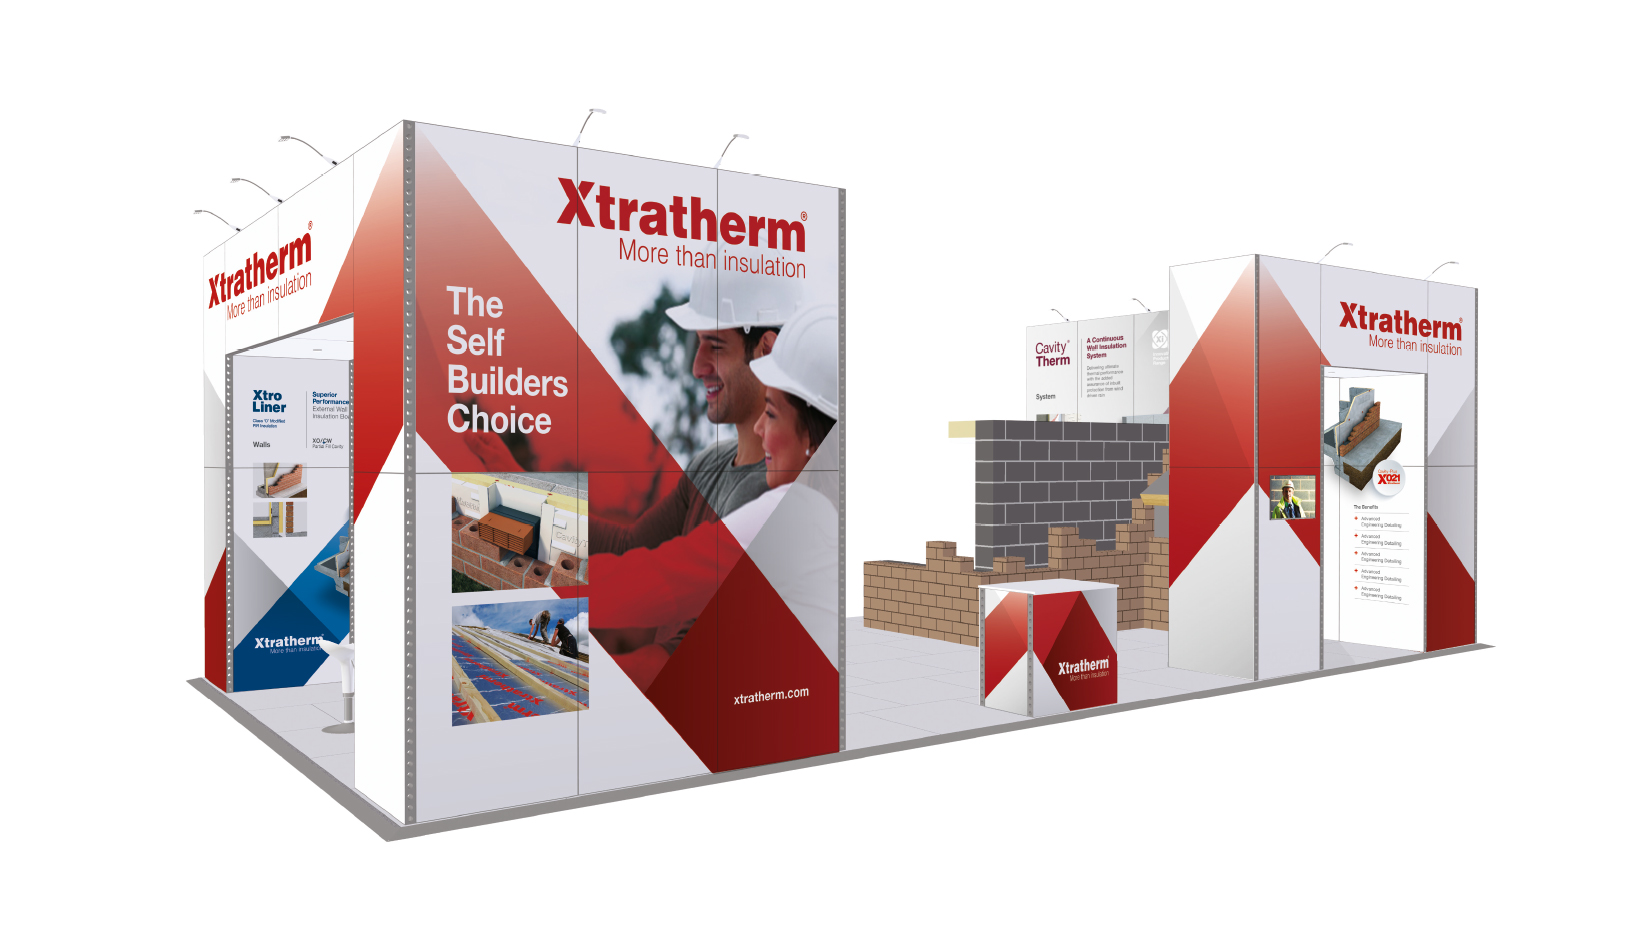 Xtratherm Exhibition Stand